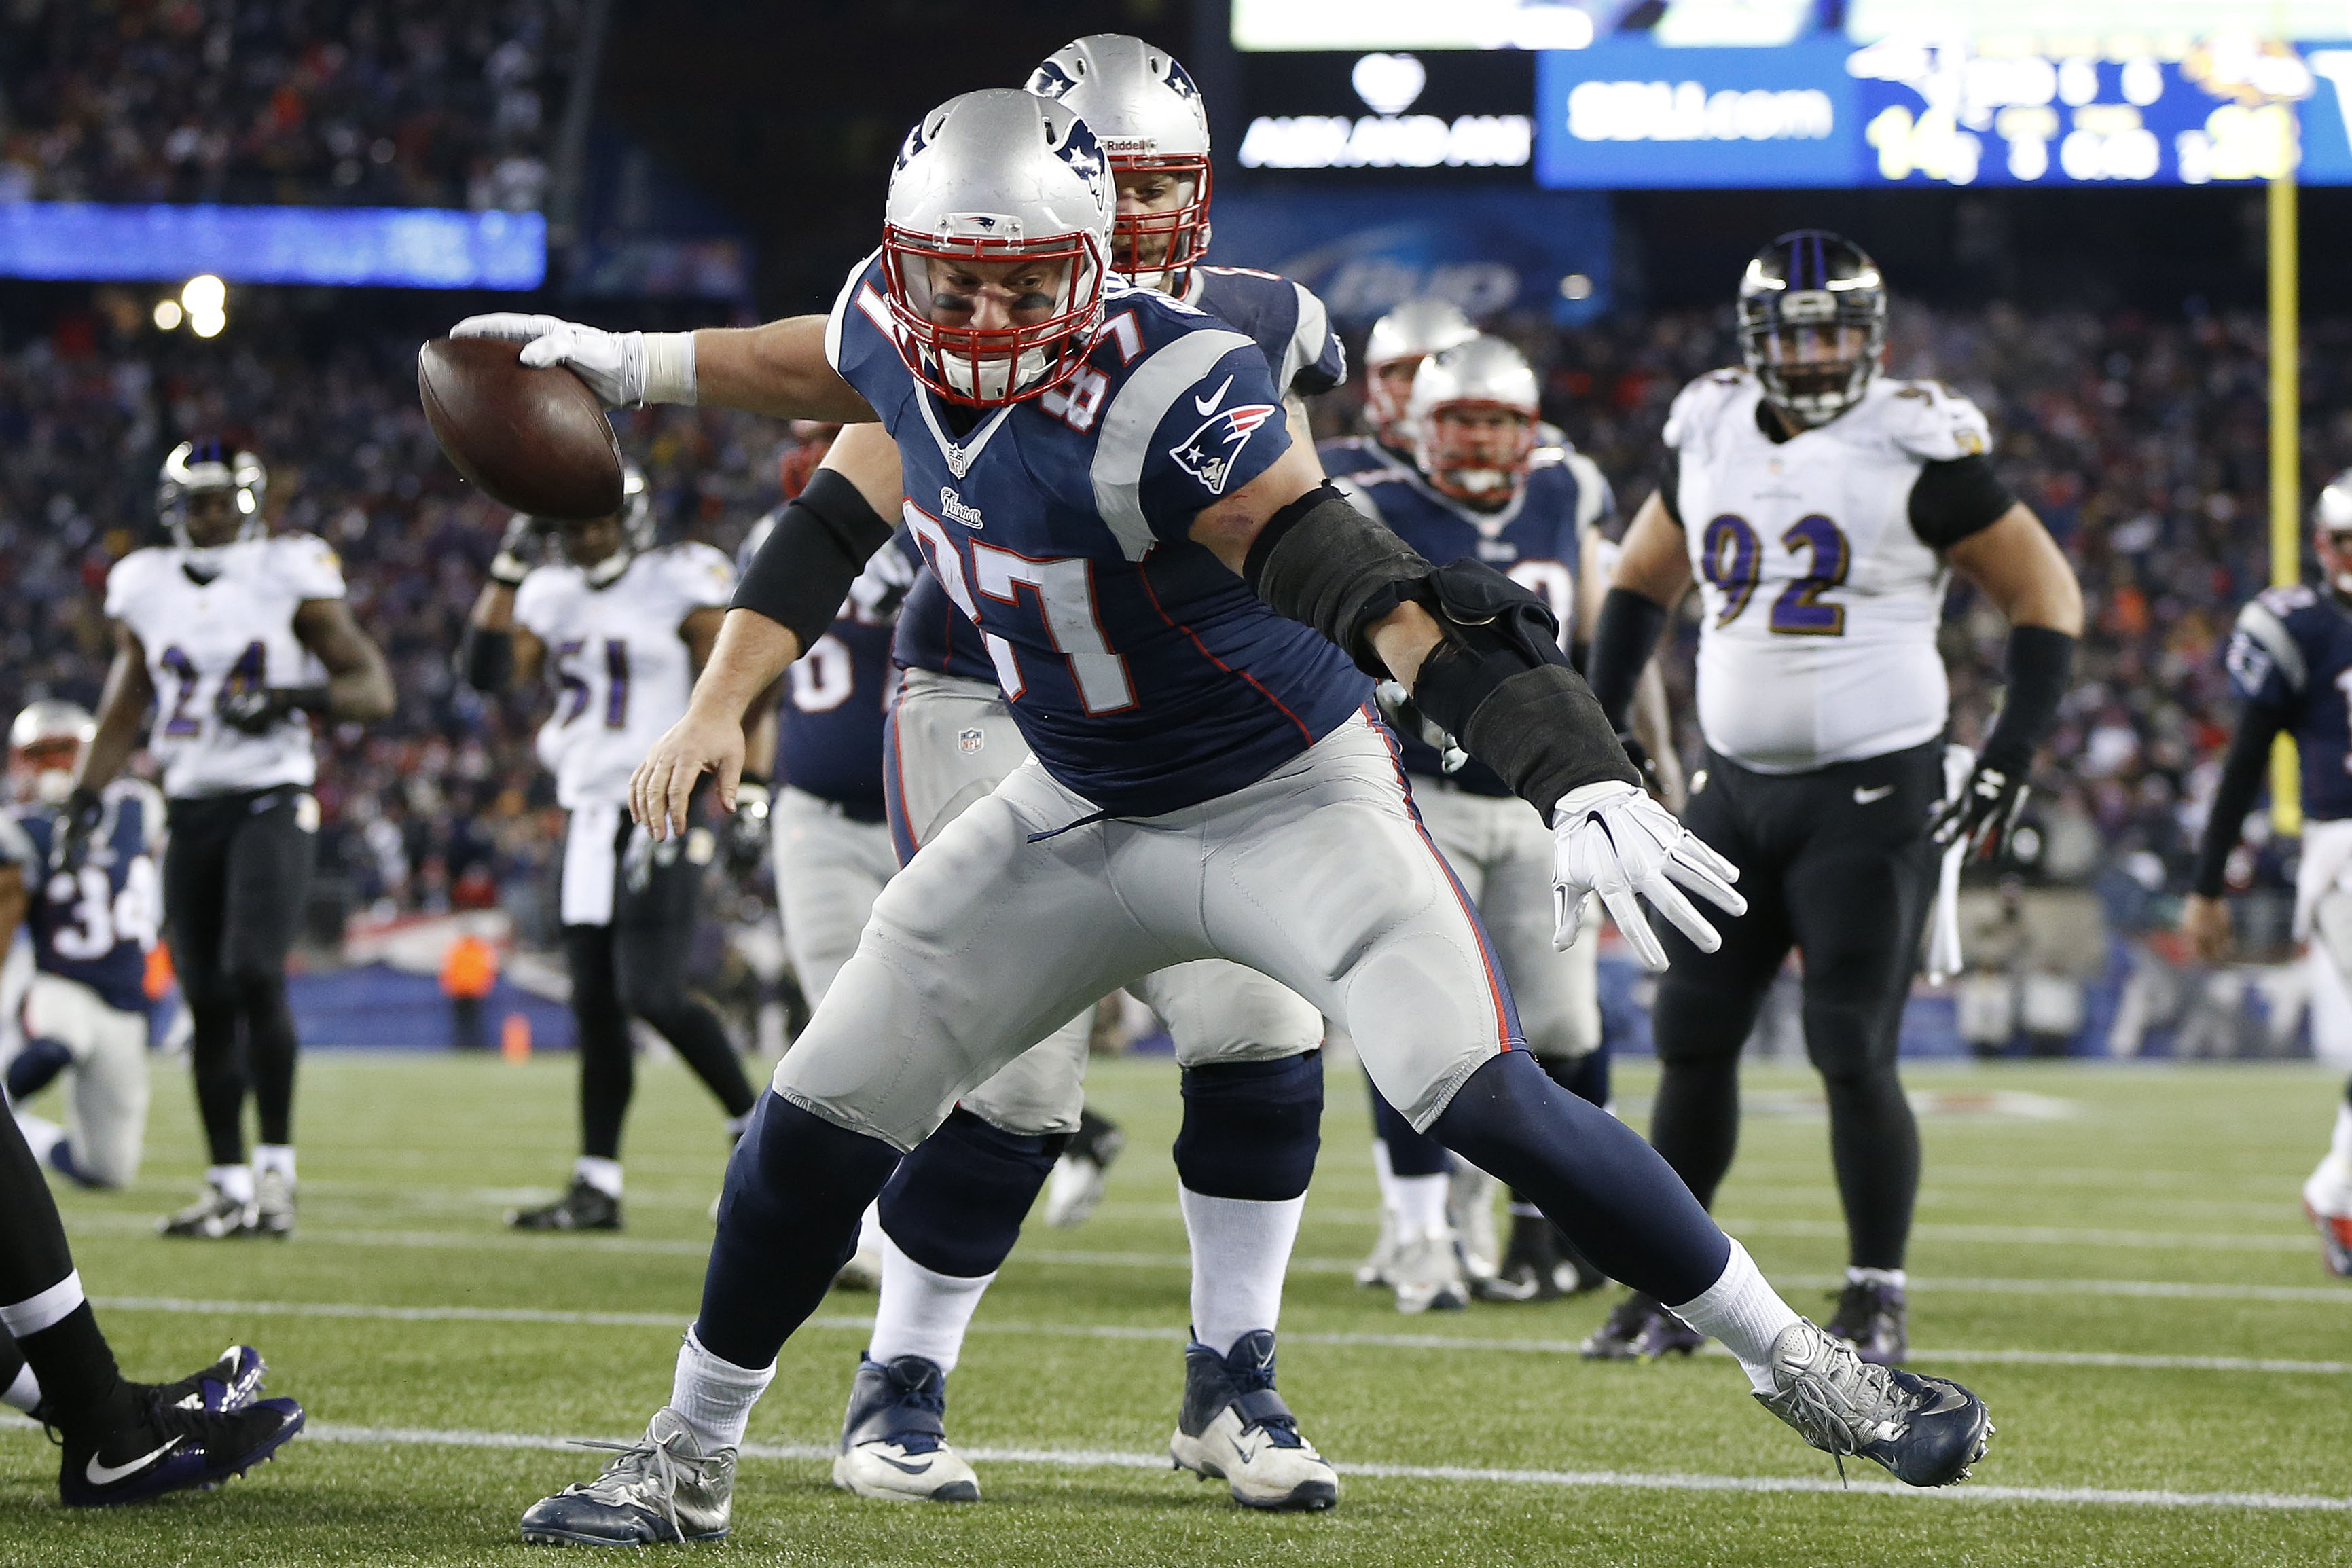 Rob Gronkowski (87) celebrates after scoring a touchdown in the third quarter against the Baltimore Ravens during the 2014 AFC Divisional playoff football game at Gillette Stadium. (Greg M. Cooper-USA TODAY Sports)